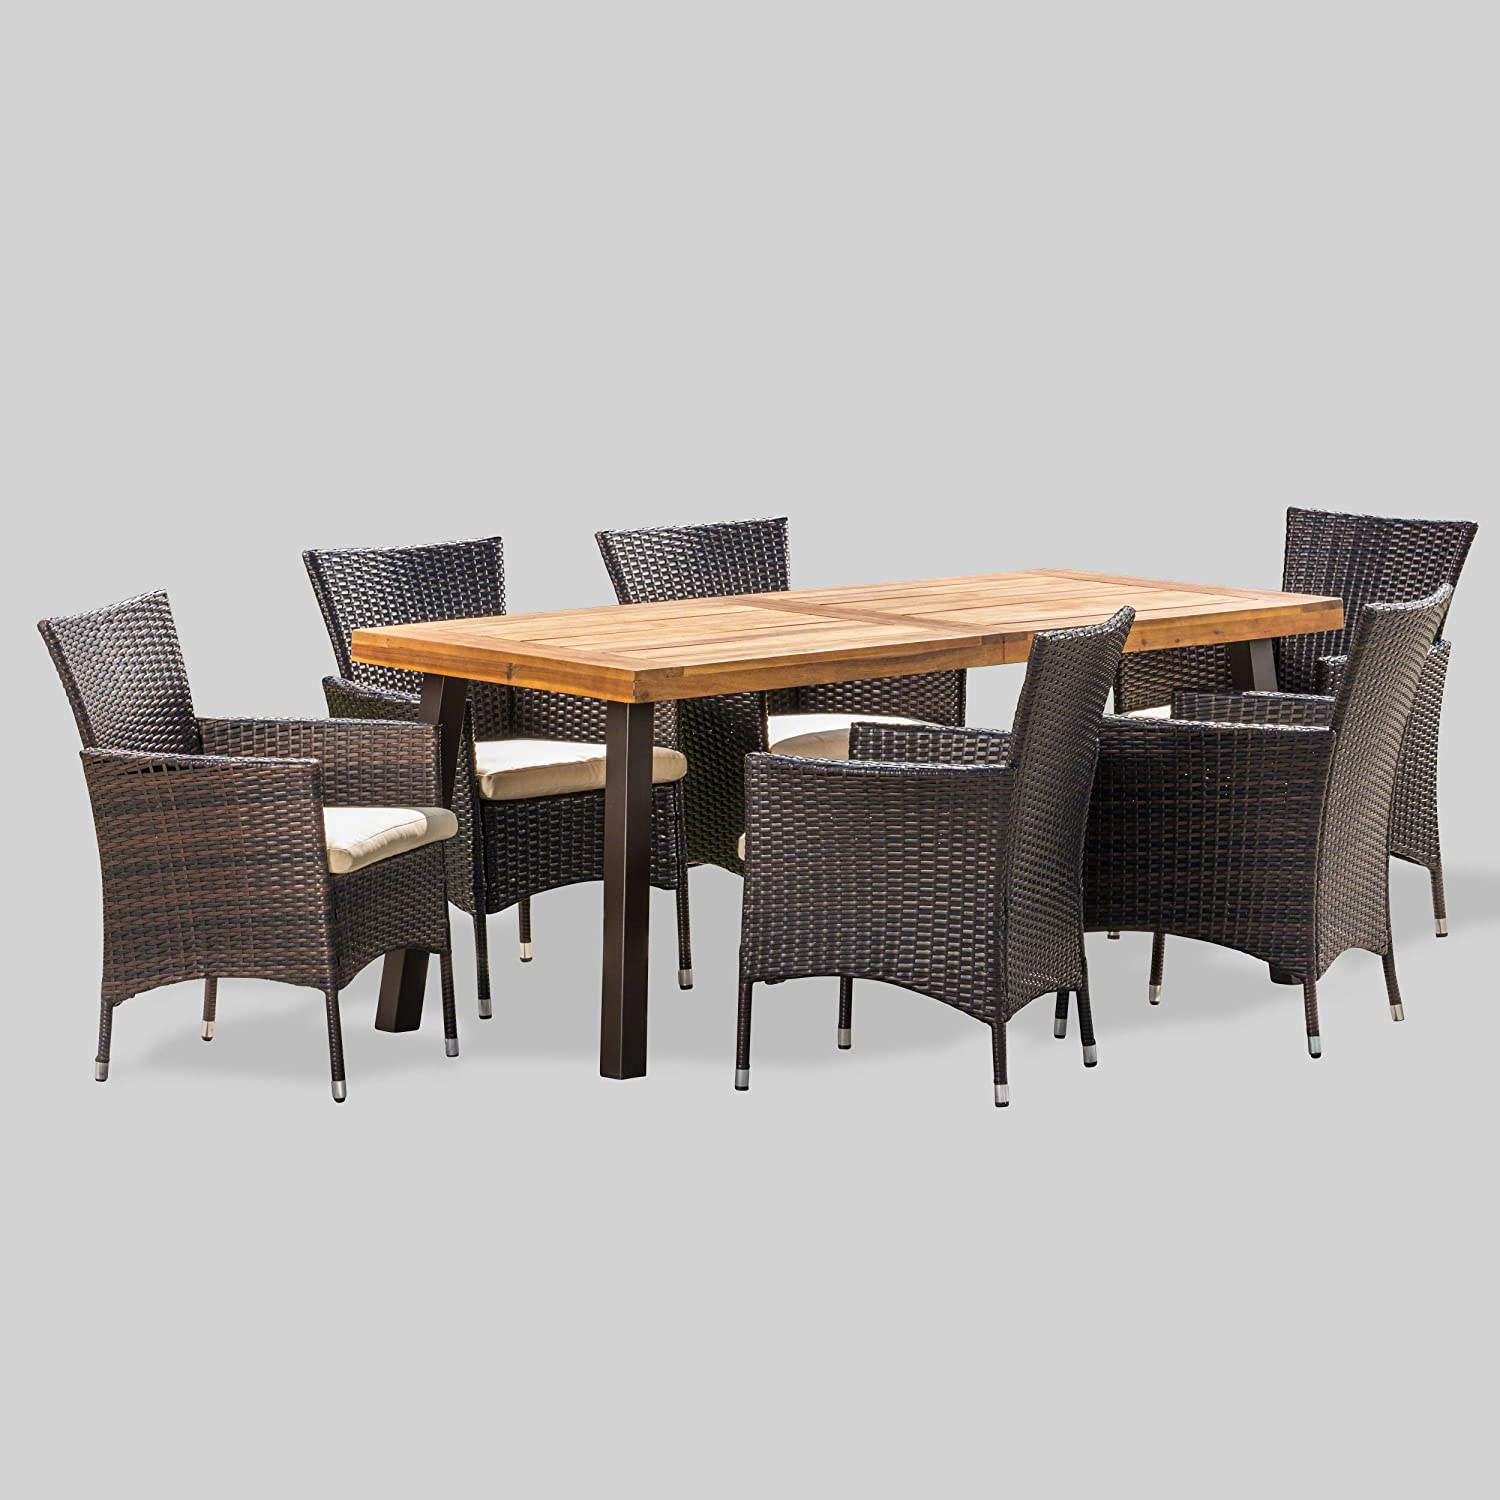 Amazon Com Christopher Knight Home Randy Outdoor 7 Piece Acacia Wood And Wicker Dining Set With Cushions Teak Finish In Multibrown Beige Rustic Metal Garden Outdoor